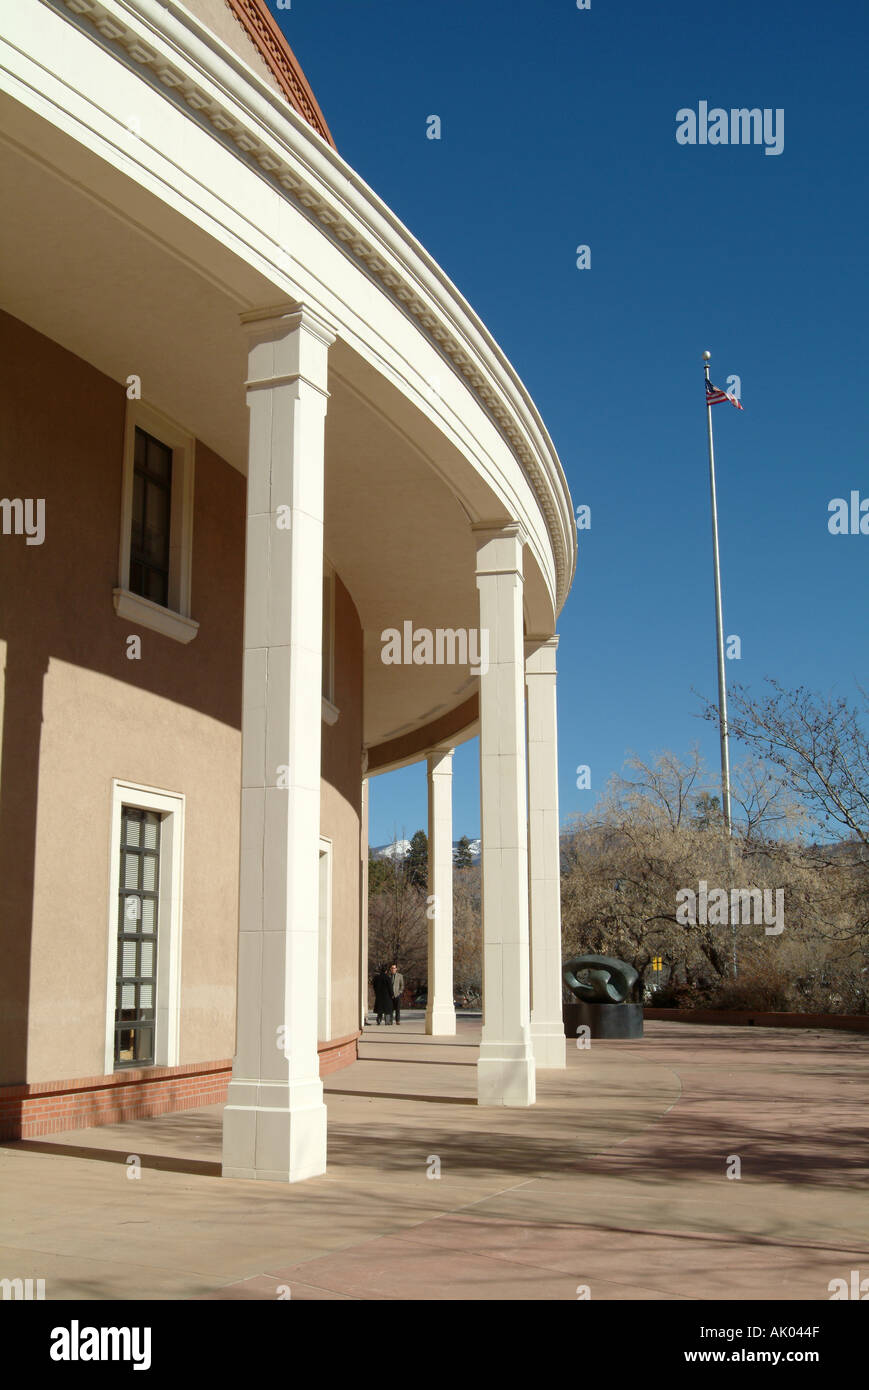 Part Of The State Capitol Building Santa Fe New Mexico United - Is new mexico part of the united states